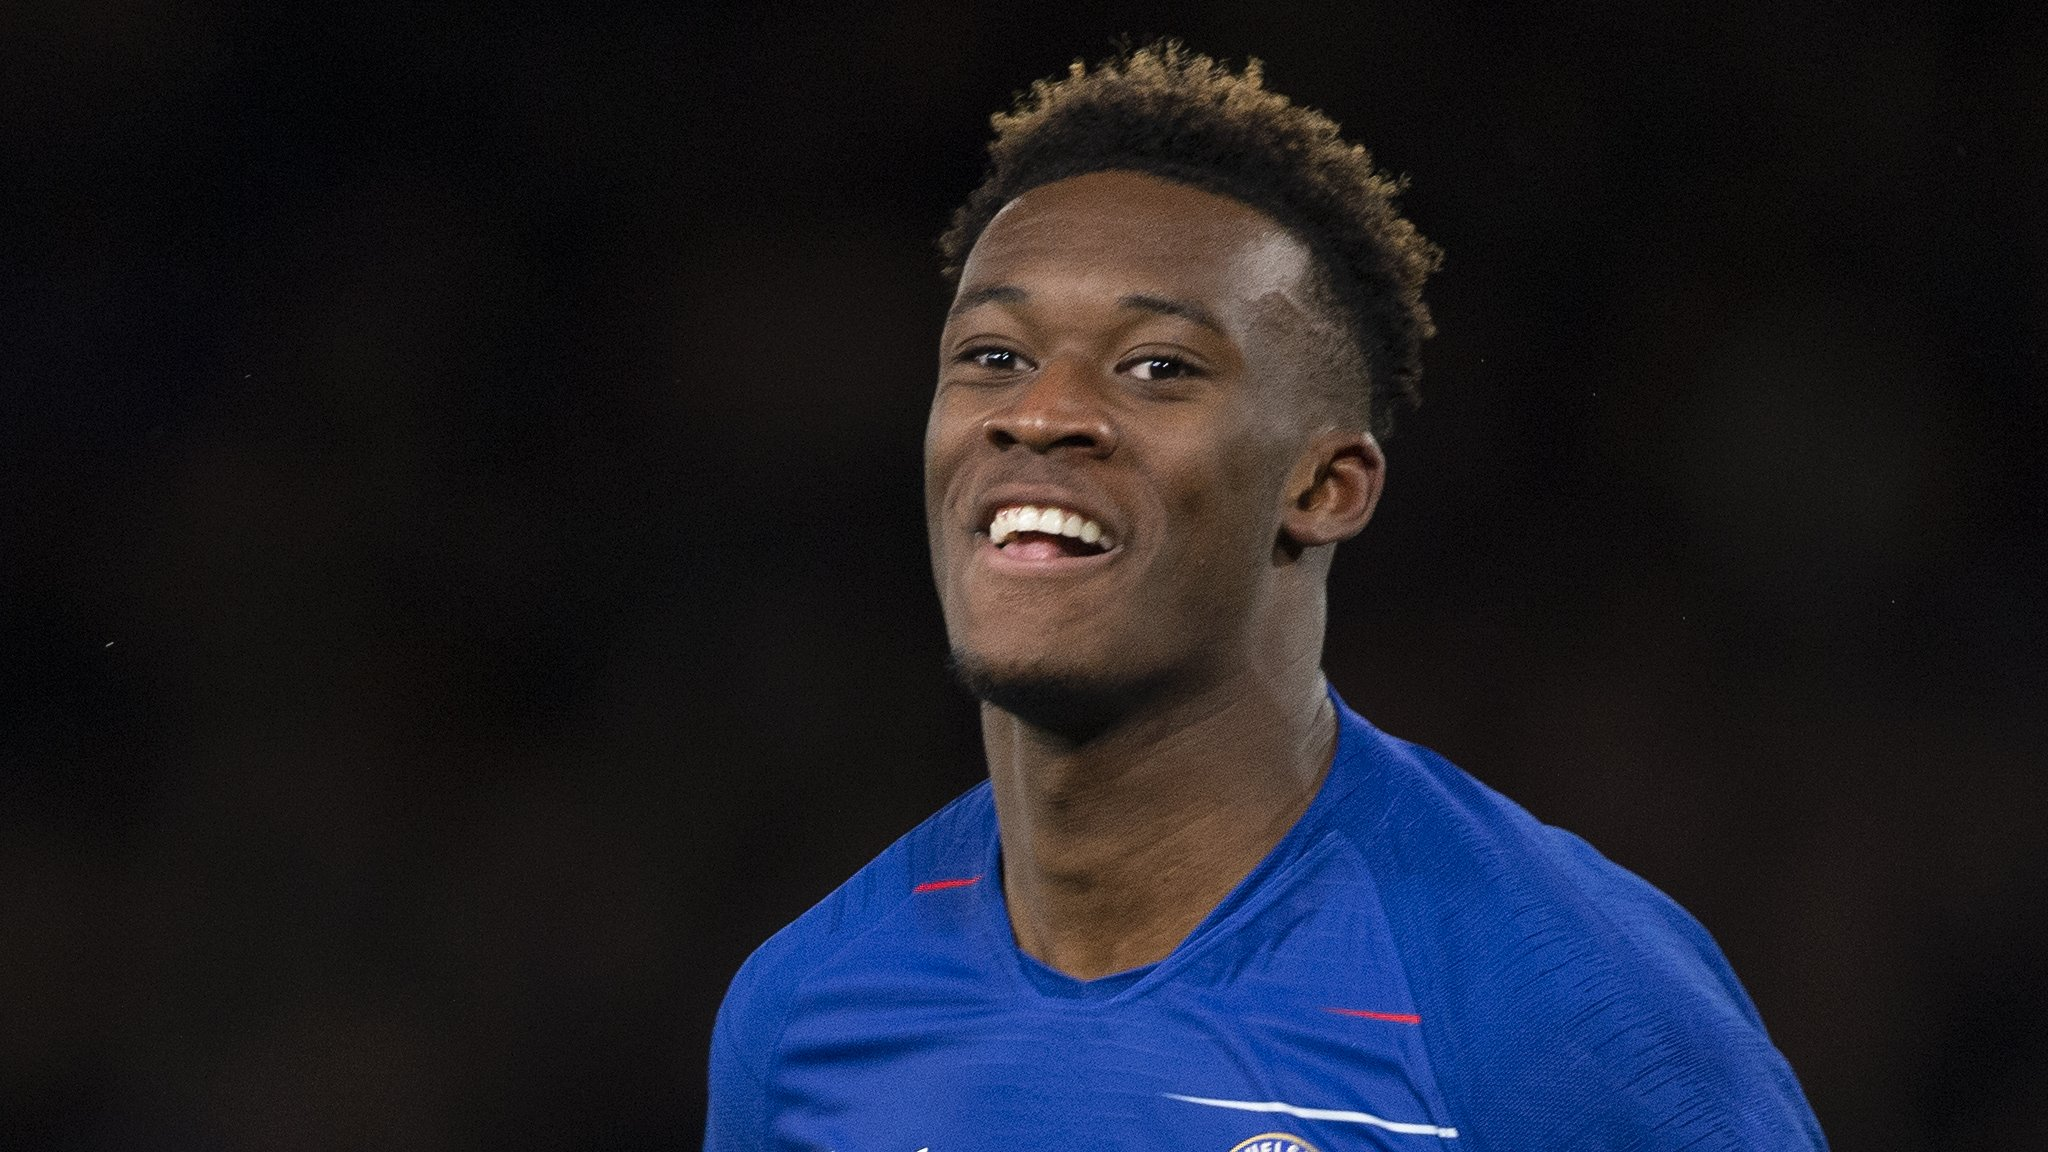 Chelsea winger Hudson-Odoi 'shocked' to receive first England call-up